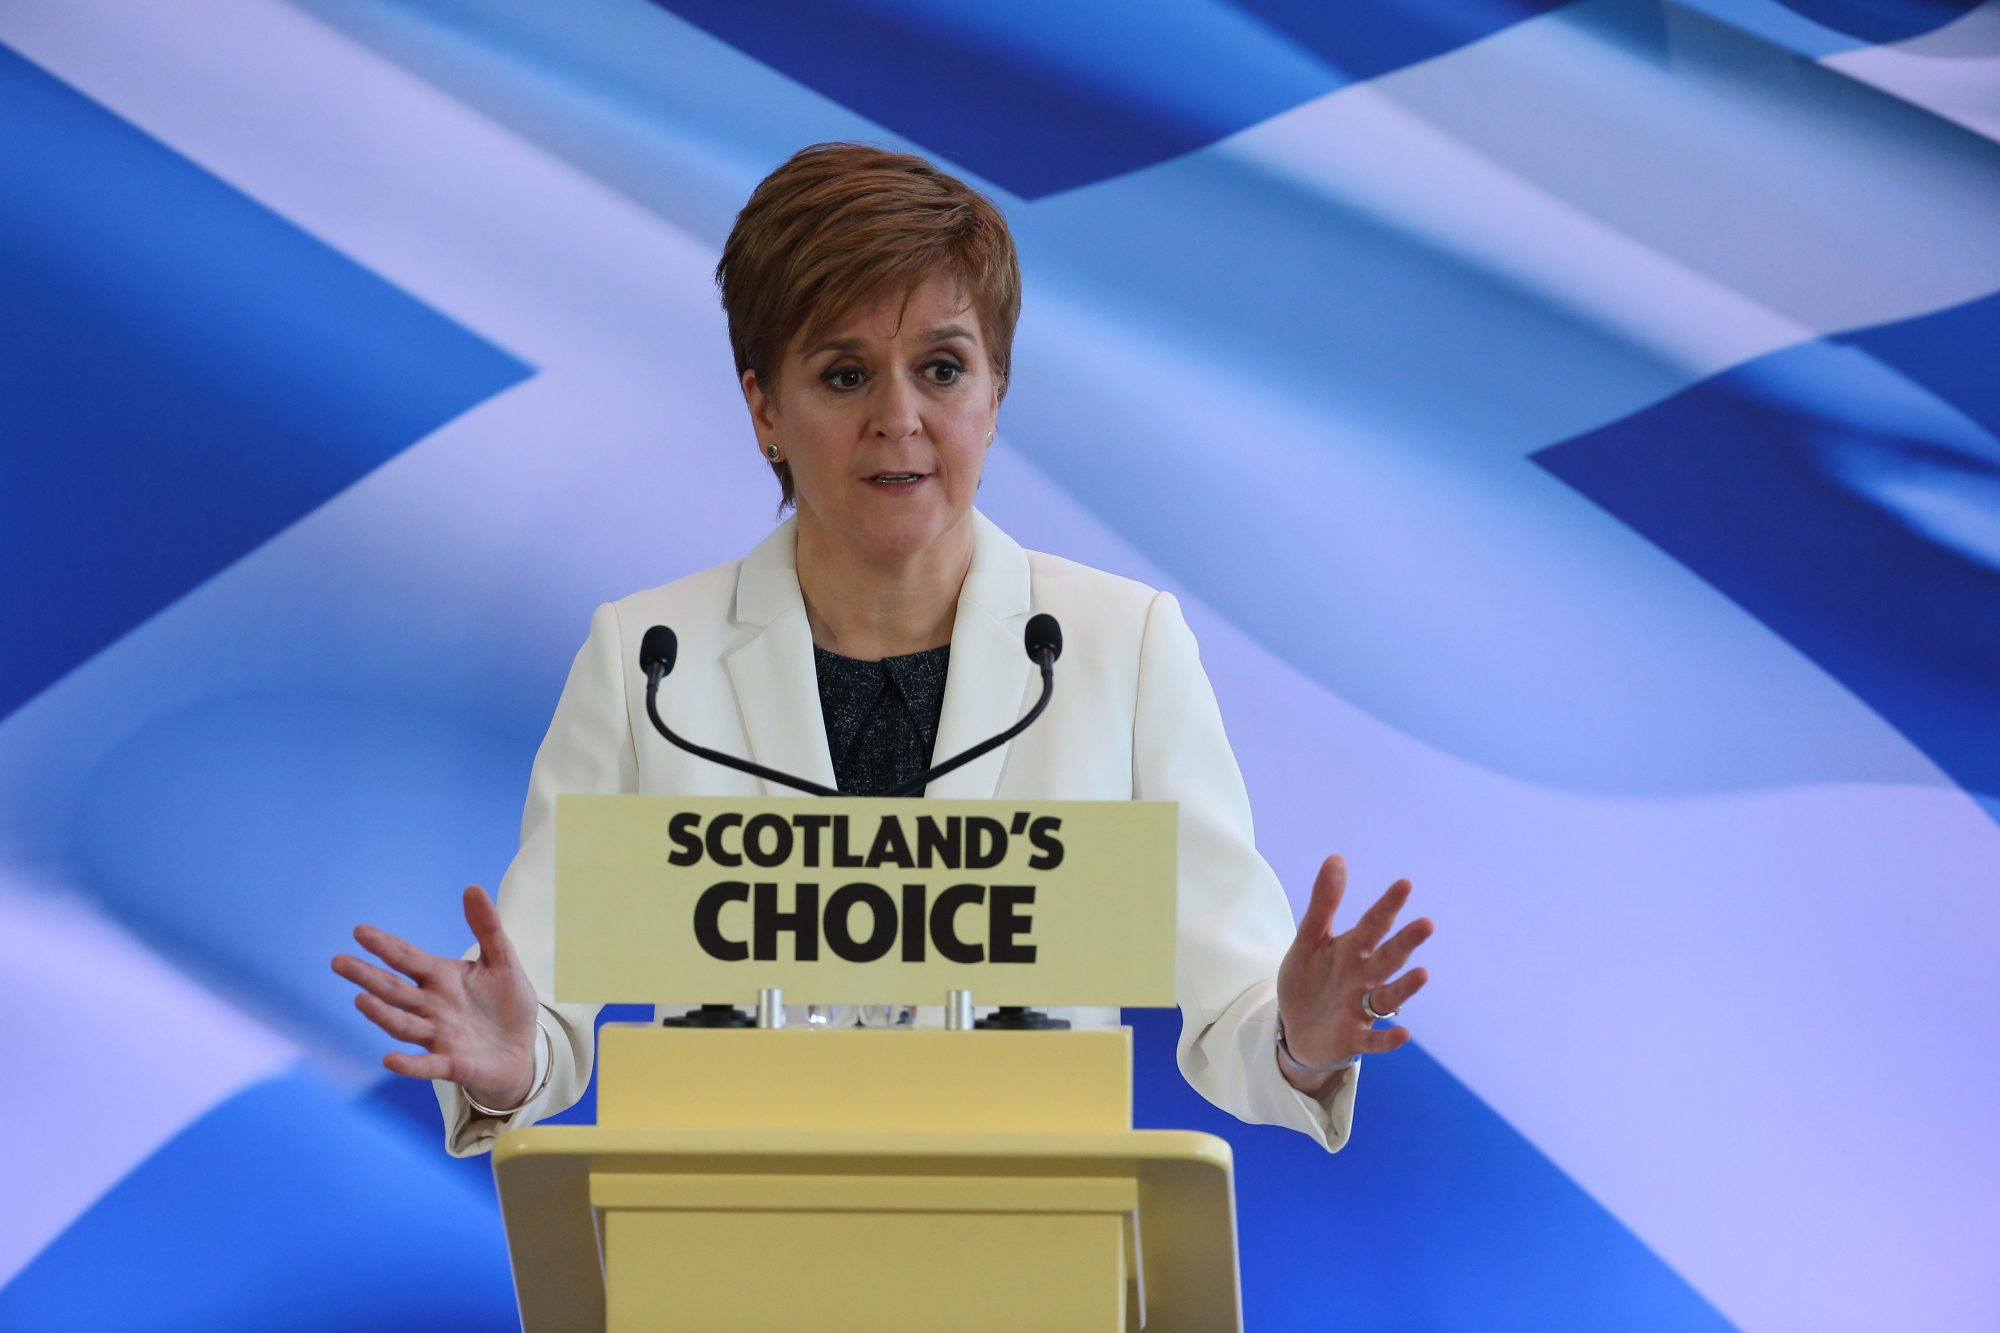 SNP sets out plans for second independence referendum - channel 4